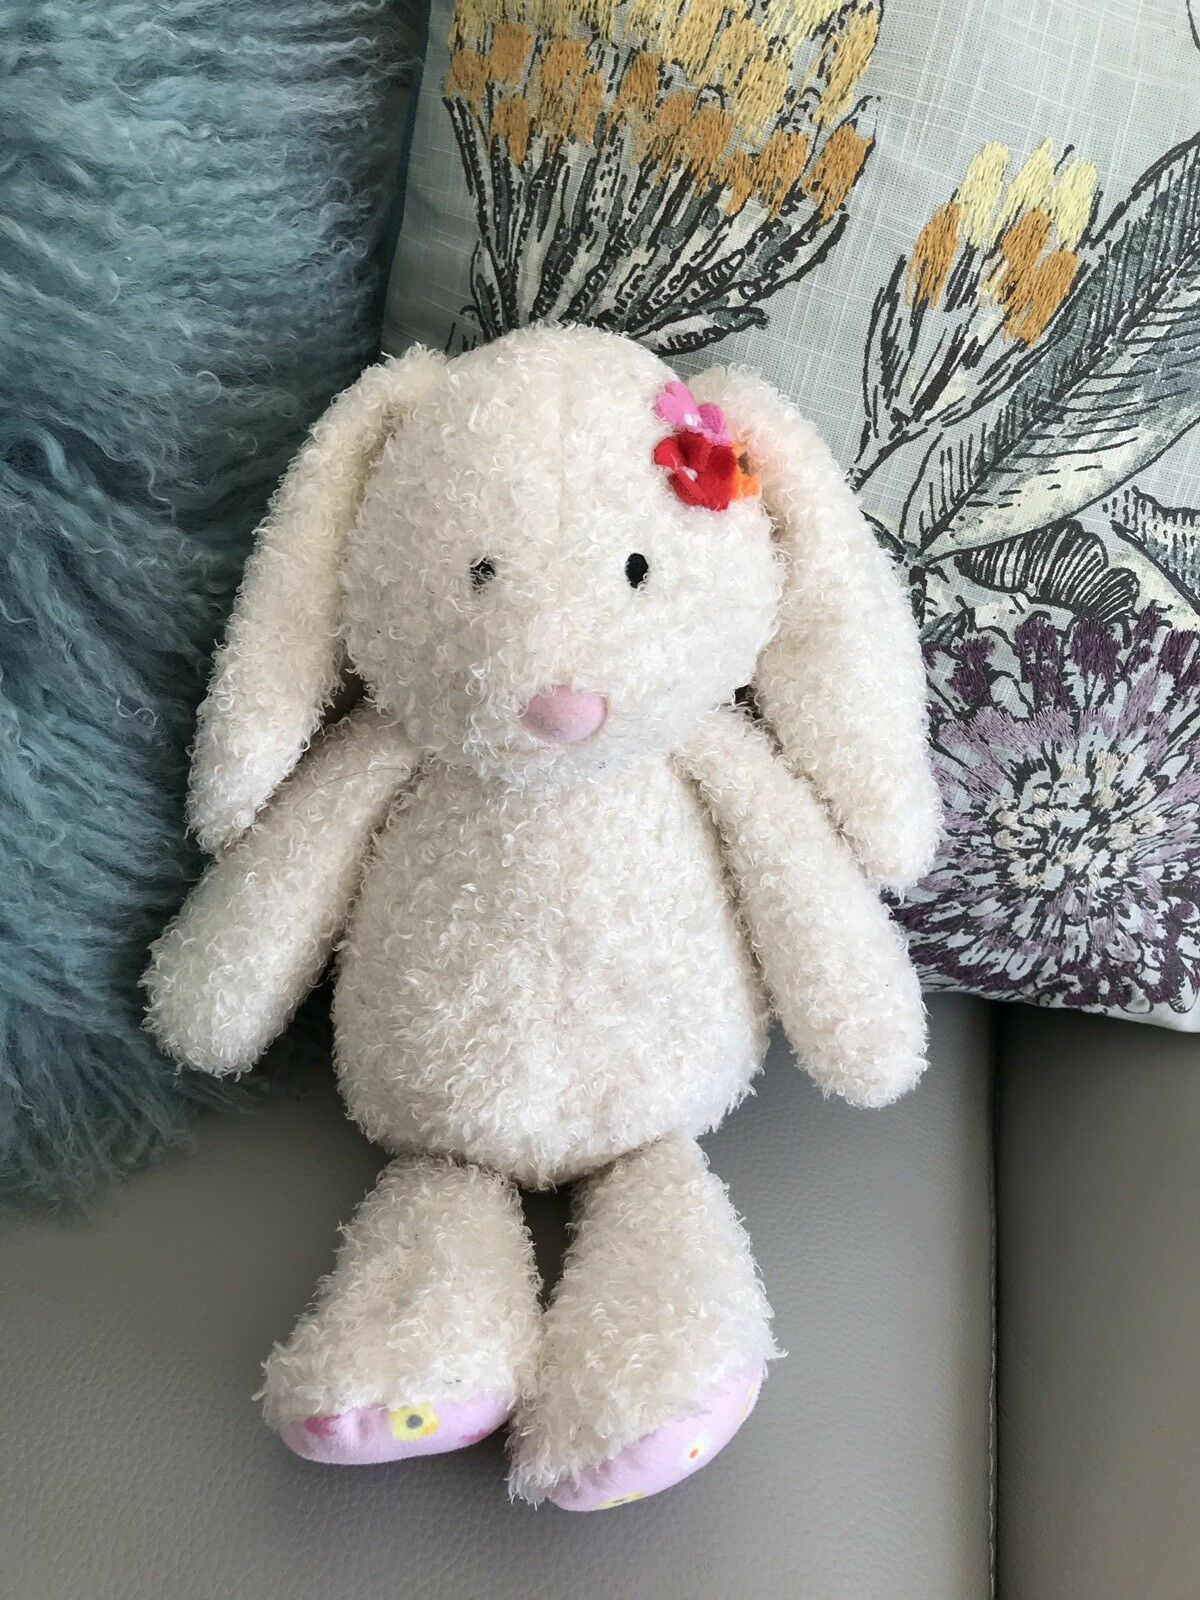 Tesco Bunny Rabbit Soft Toy Comforter lapin creamy white pink floral feet 13